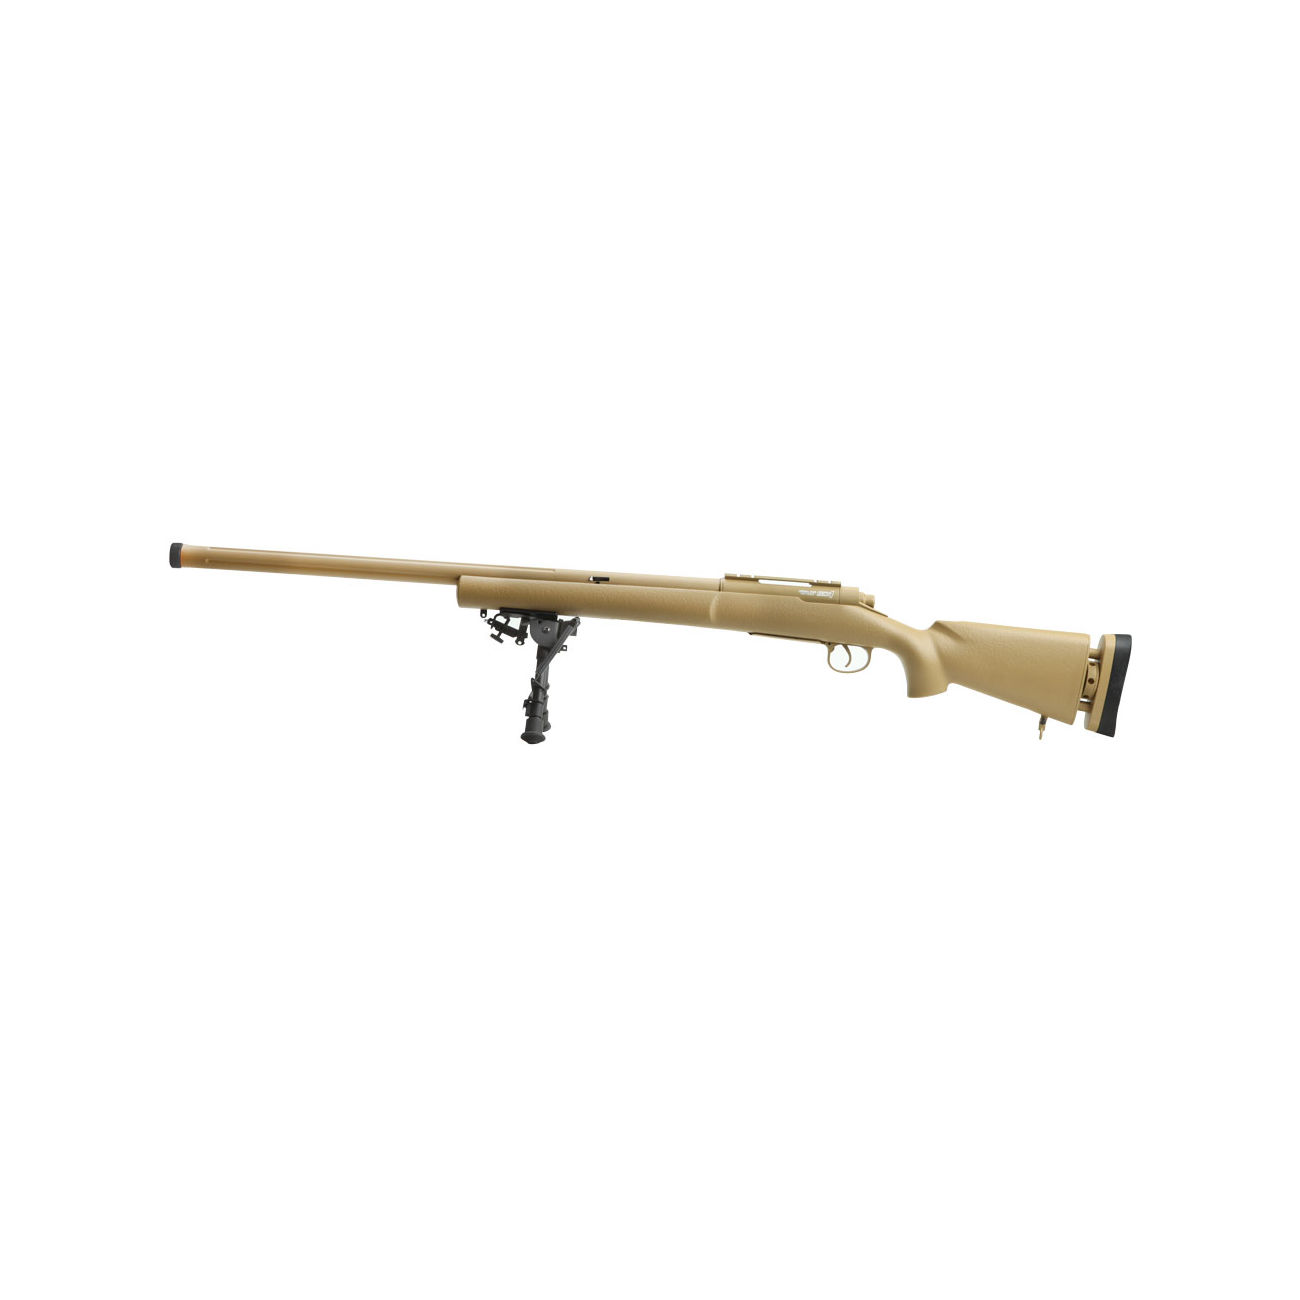 Echo1 M28 Bolt Action Snipergewehr Generation 2 Springer desert tan 0